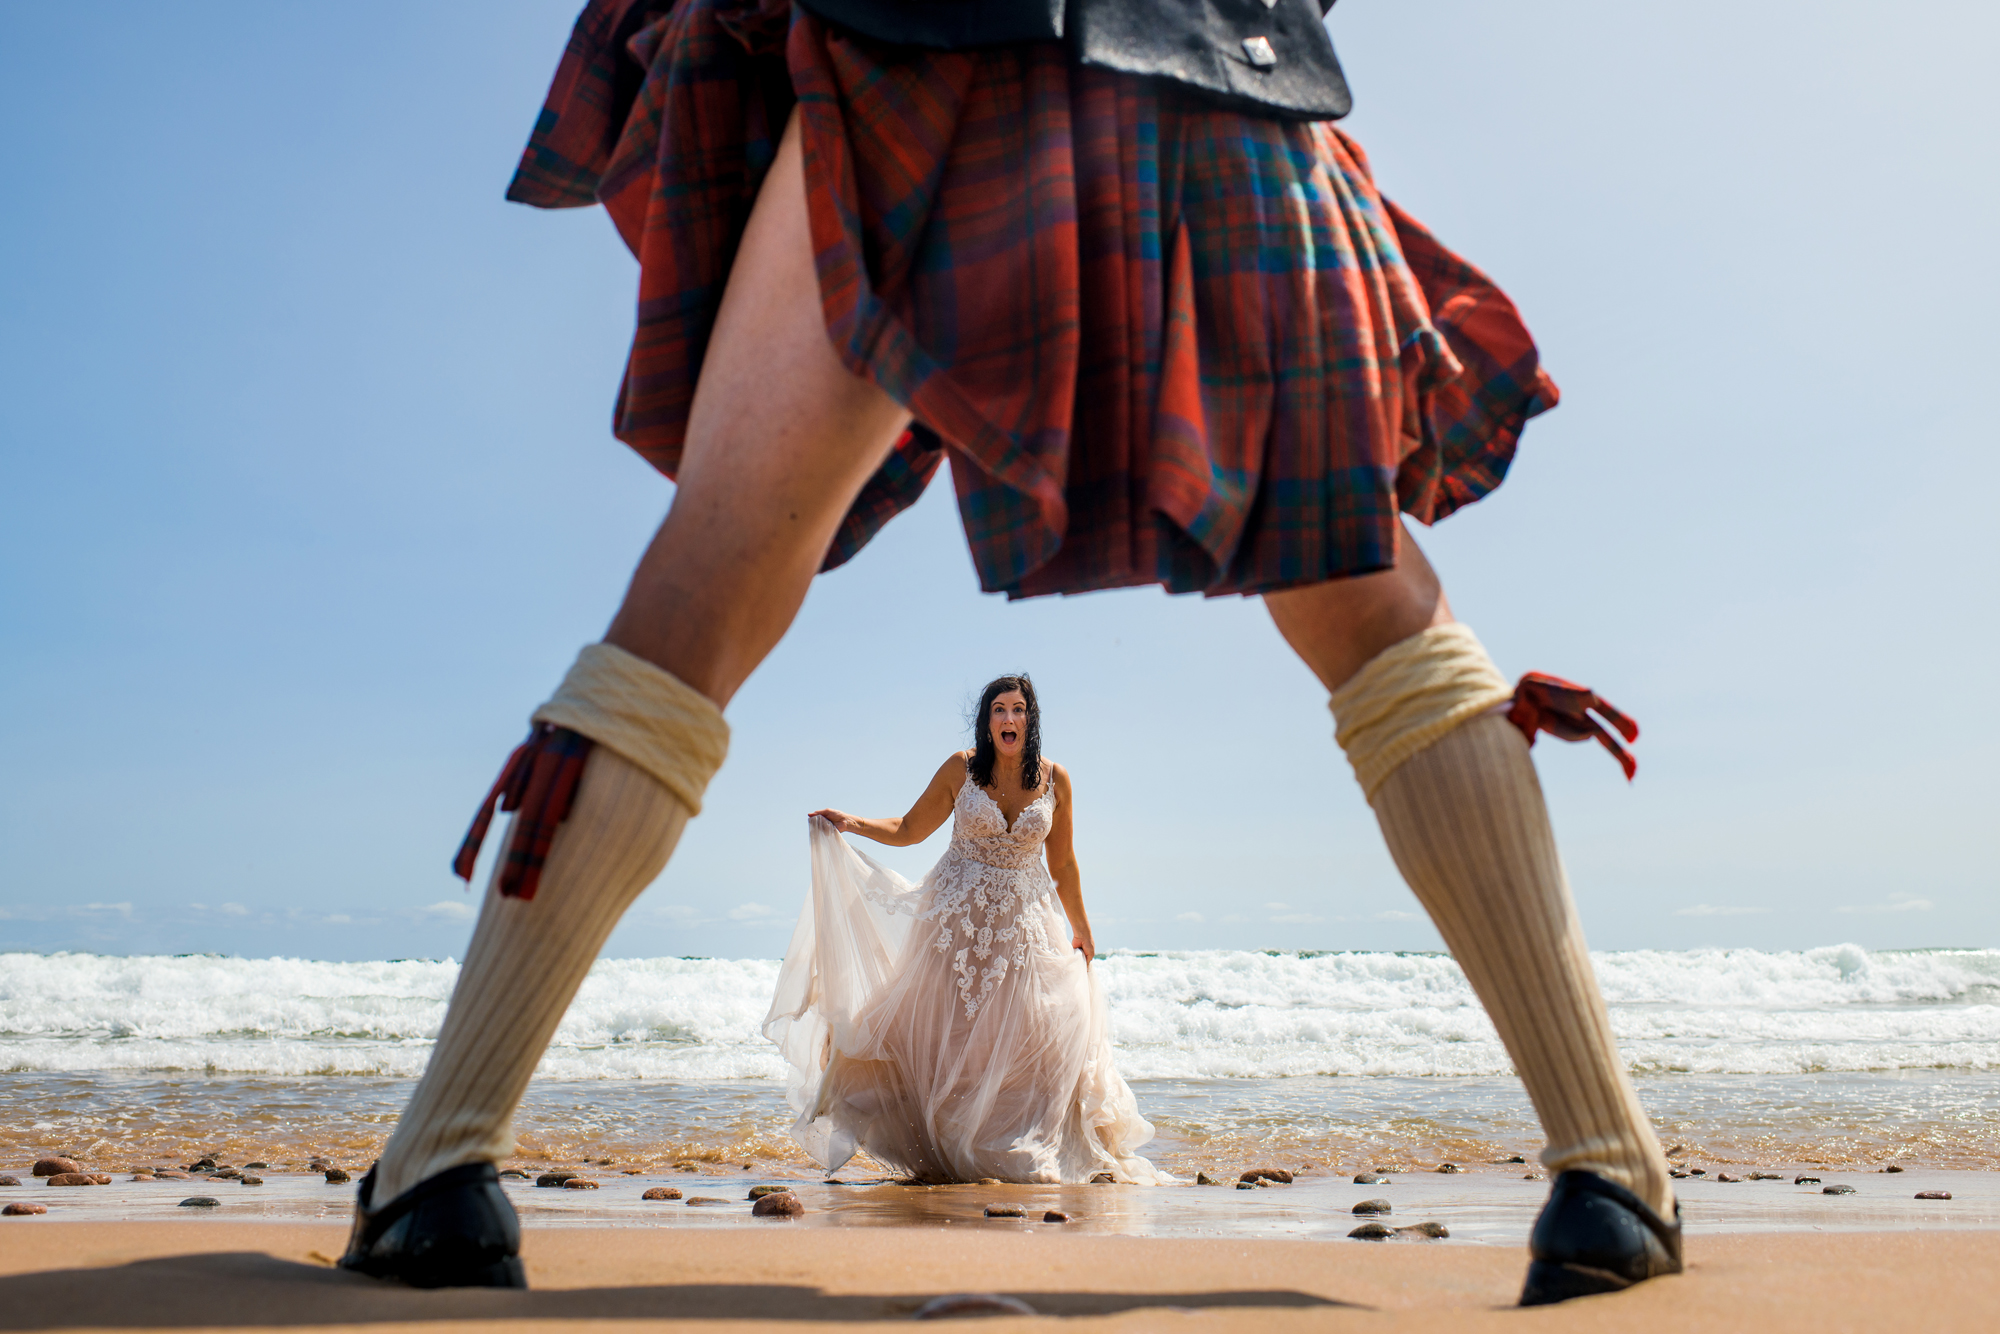 Bride exiting surf, seen from between grooms legs in kilt - photo by Cooked Photography